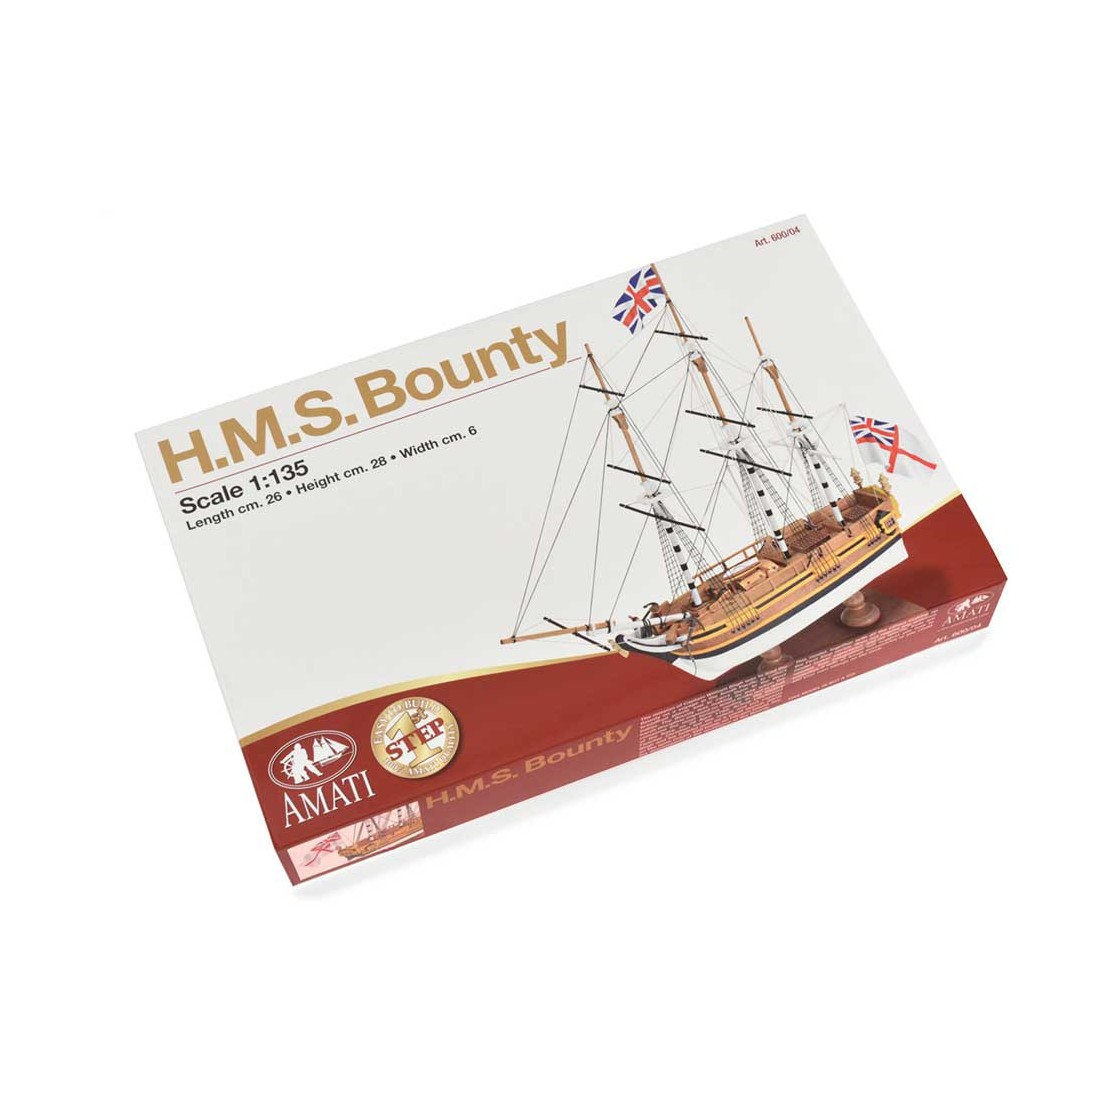 H.M.S. Bounty - First Step